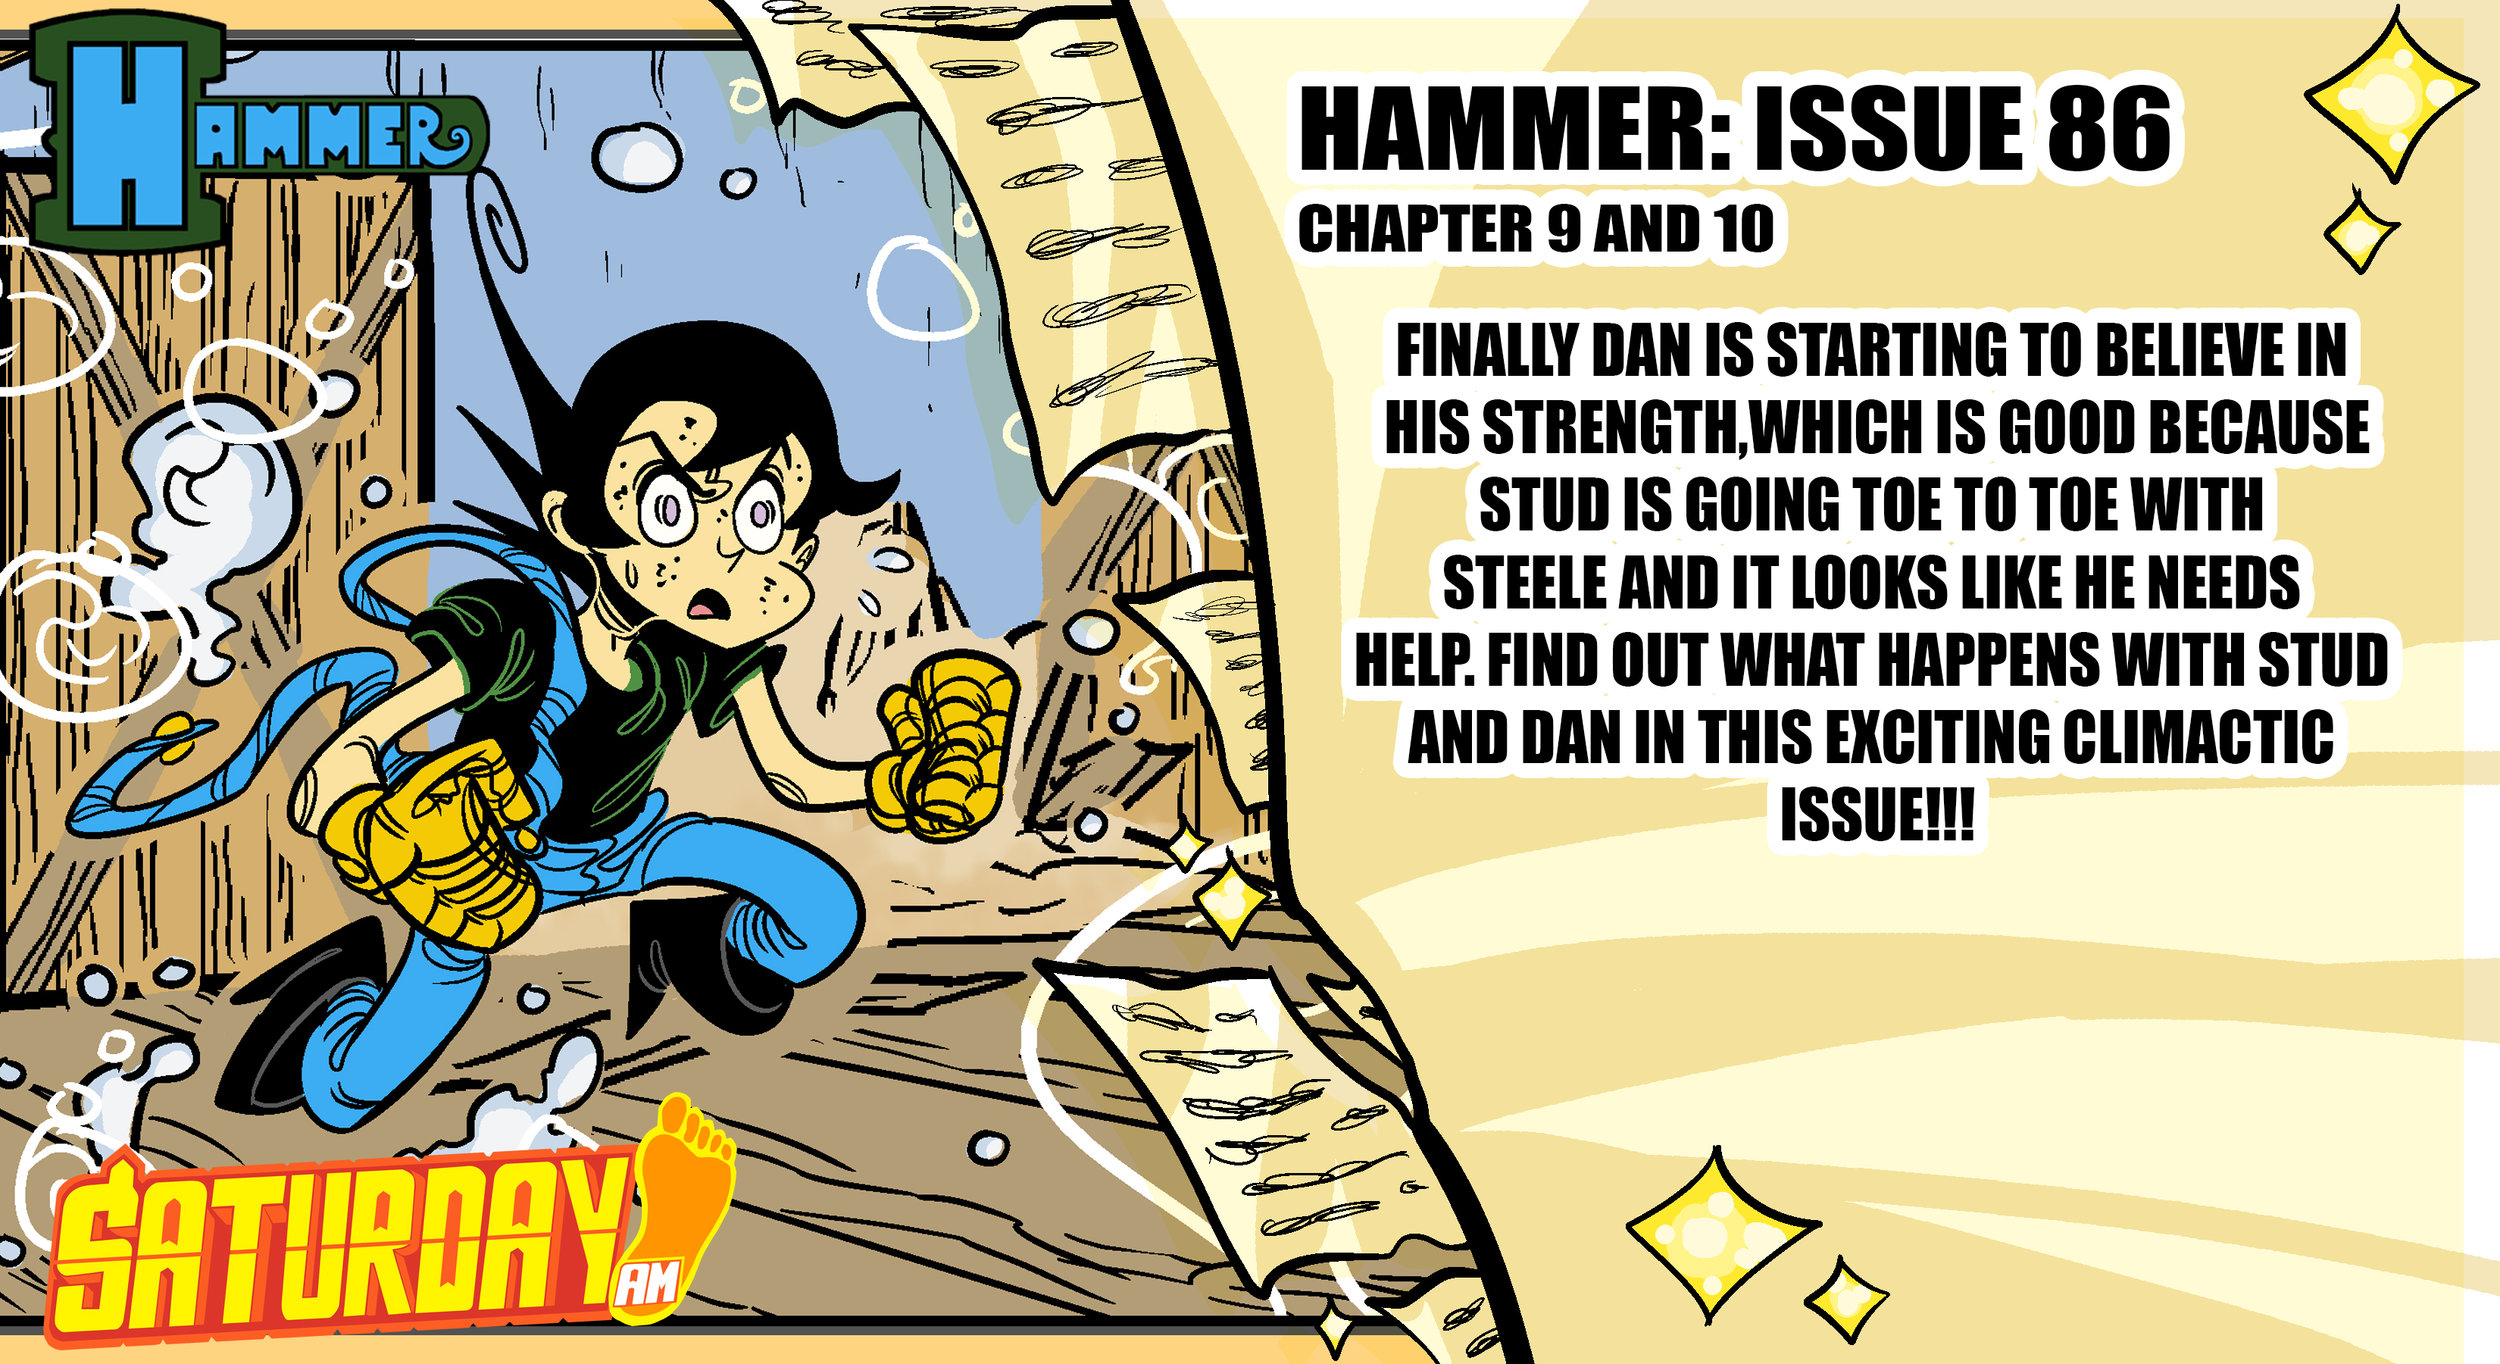 HAMMER WEBSITE_LATEST ISSUE GRAPHIC #86.jpg